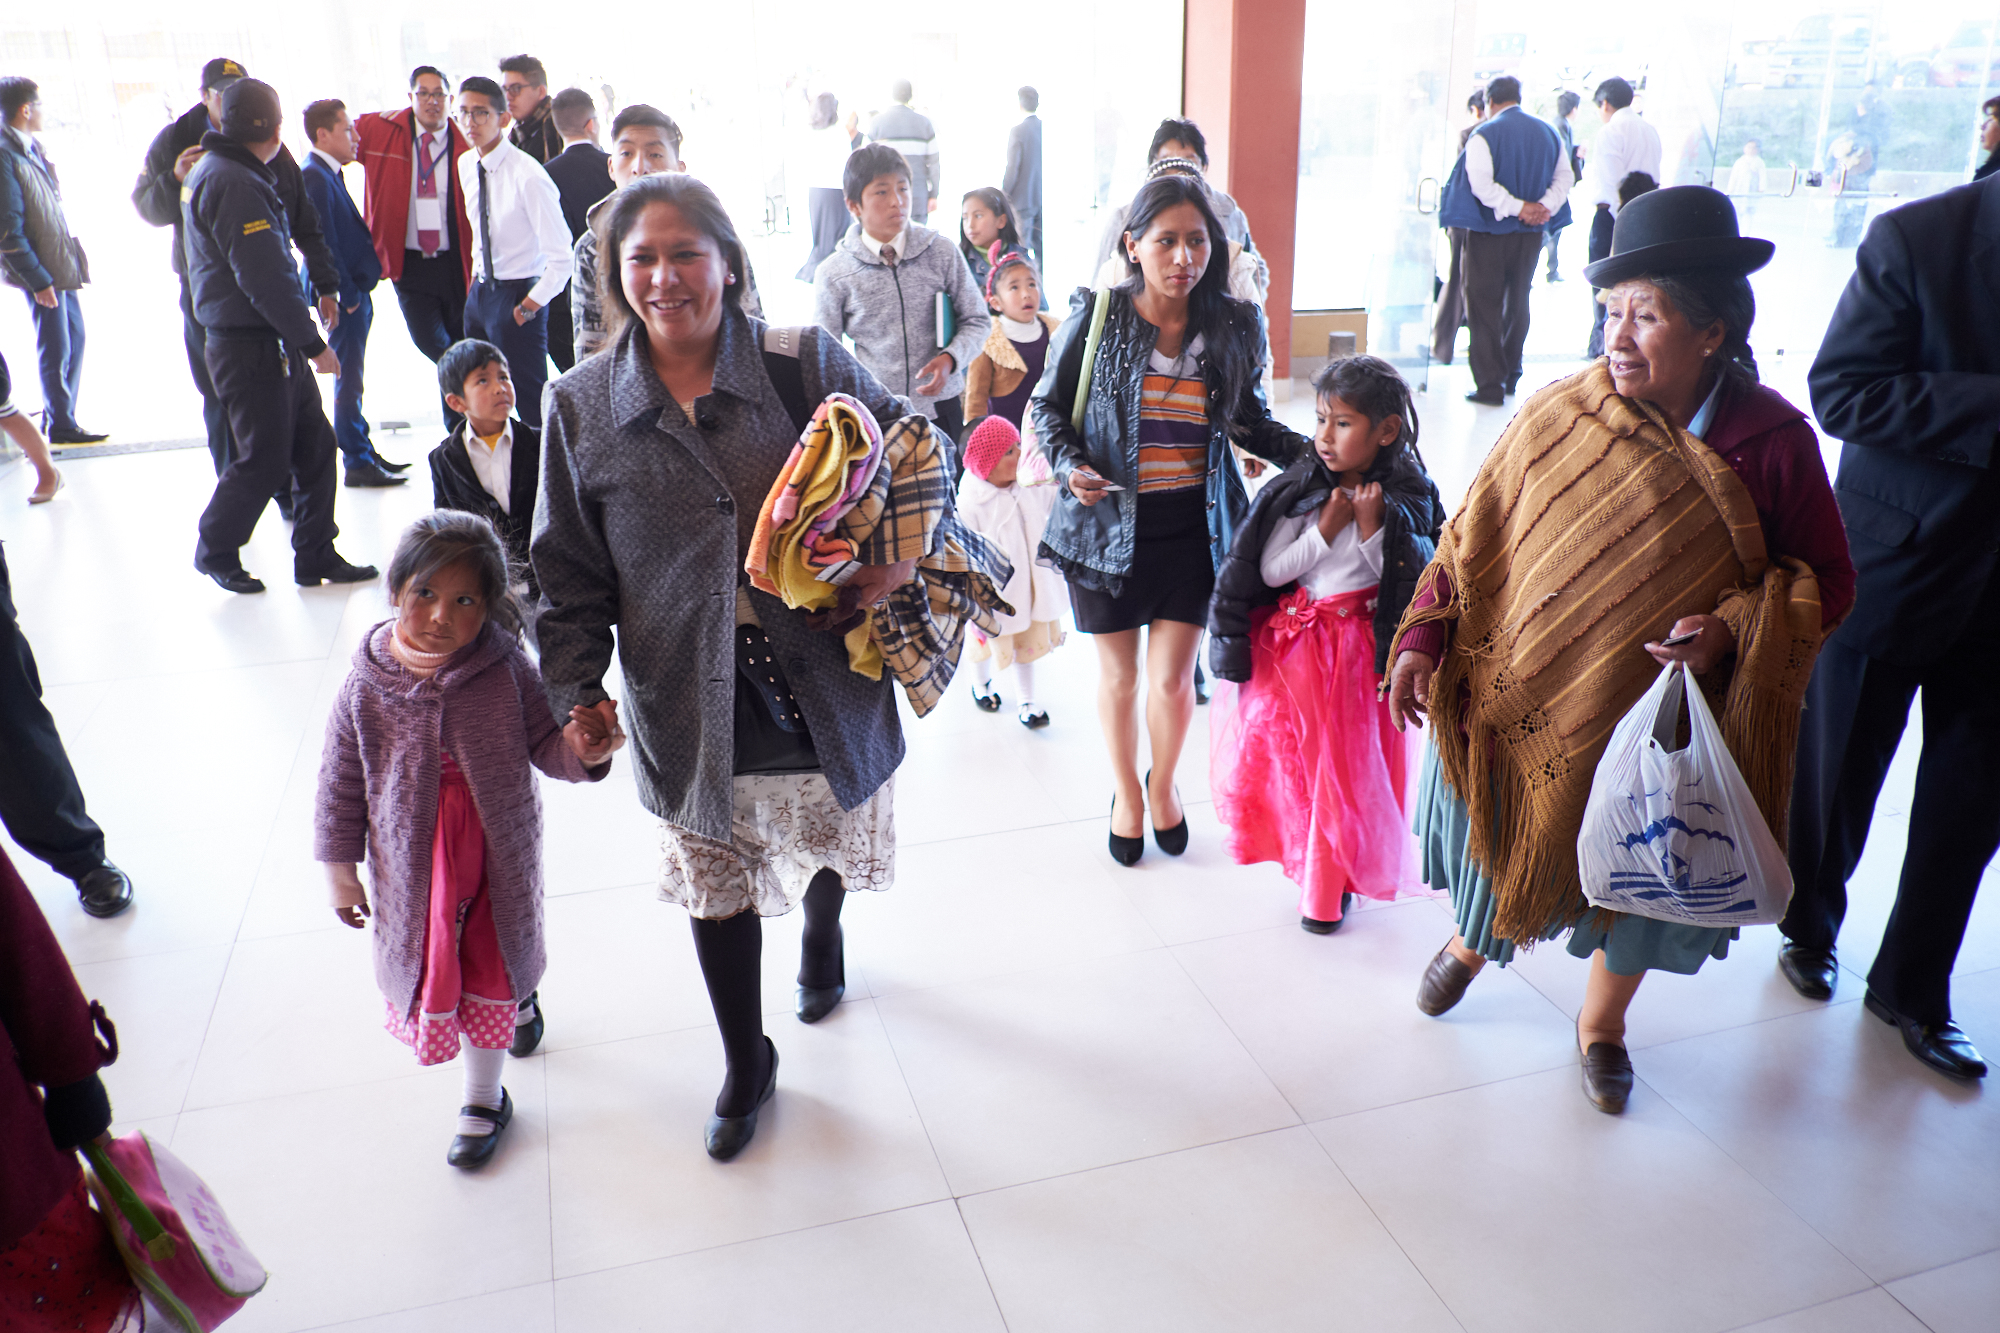 Bolivian families arrive at the Polideportivo Heroes de October in El Alto, Bolivia, for the chance to hear President Russell M. Nelson in an evening devotional Sunday, Oct. 21, 2018.